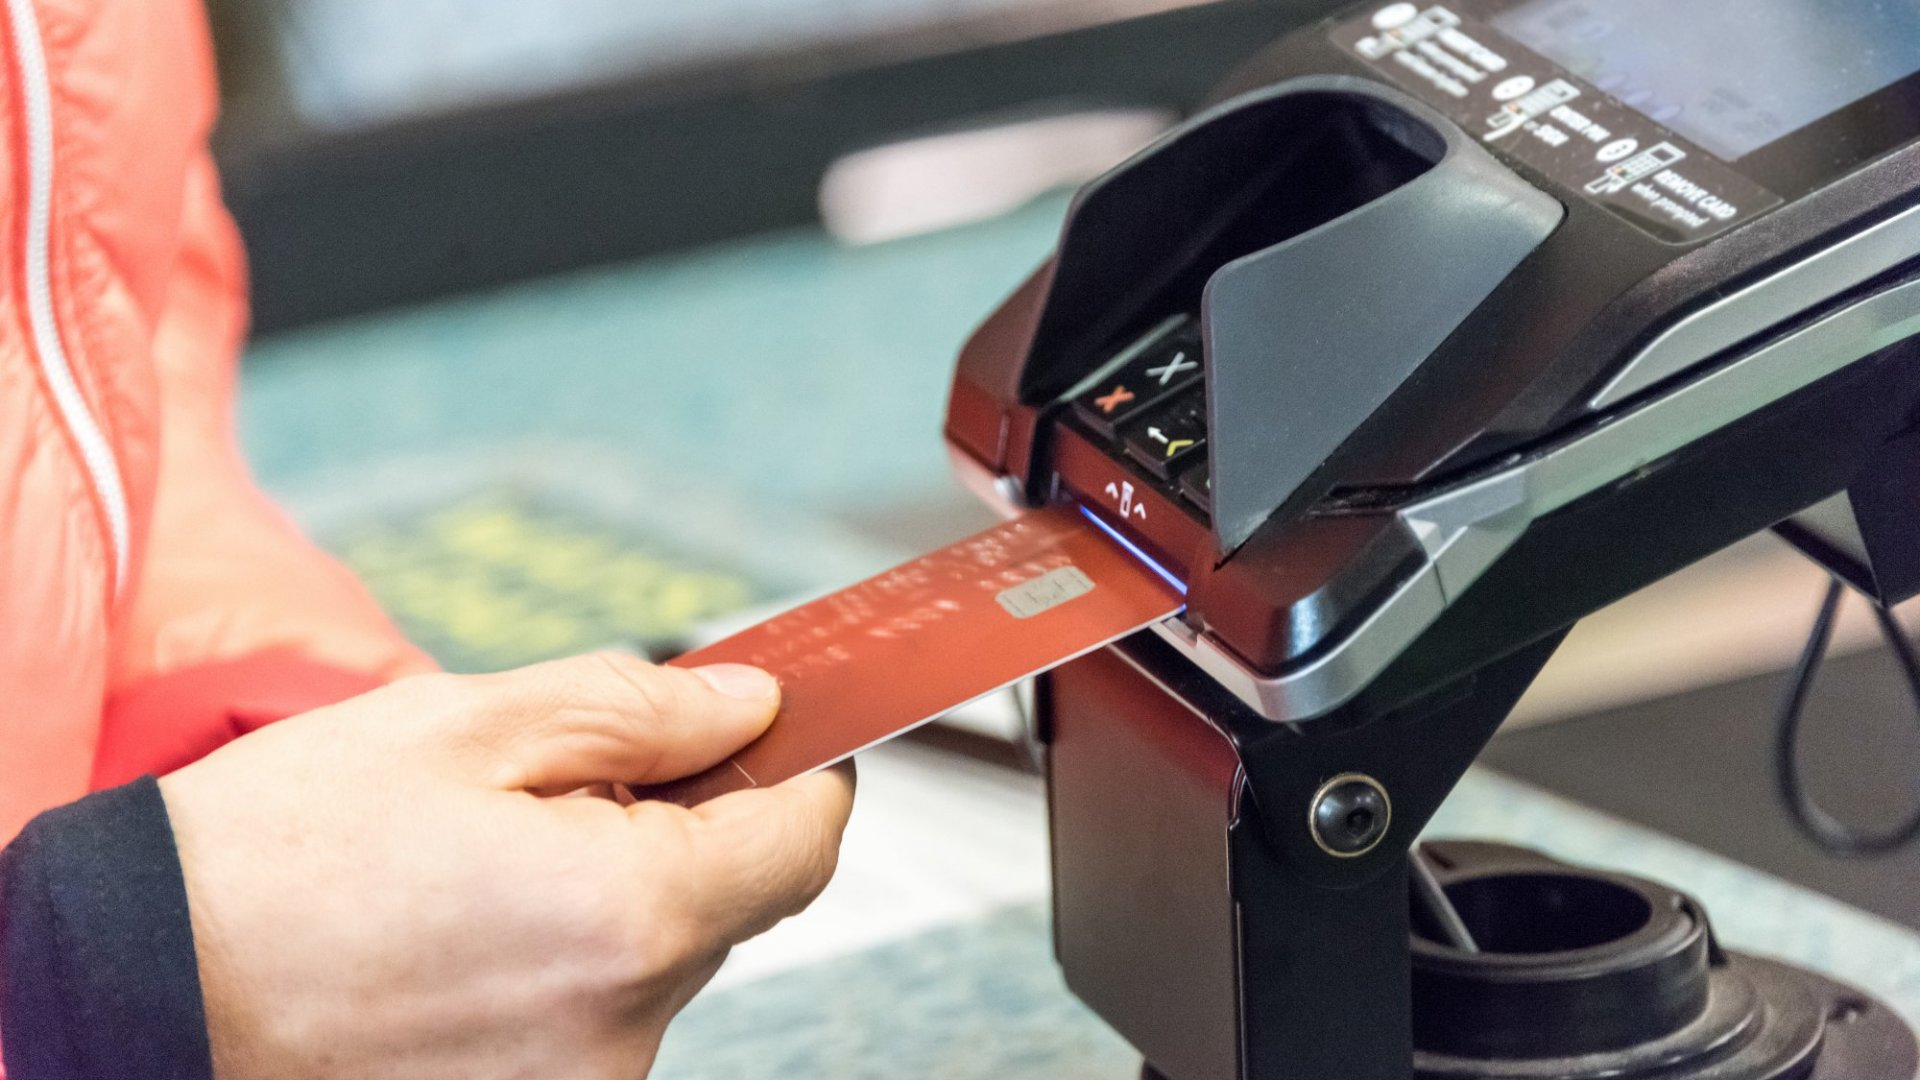 Most Small Companies Missed the Deadline to Accept Chip-Based Credit Cards. Here's How They Can Catch Up